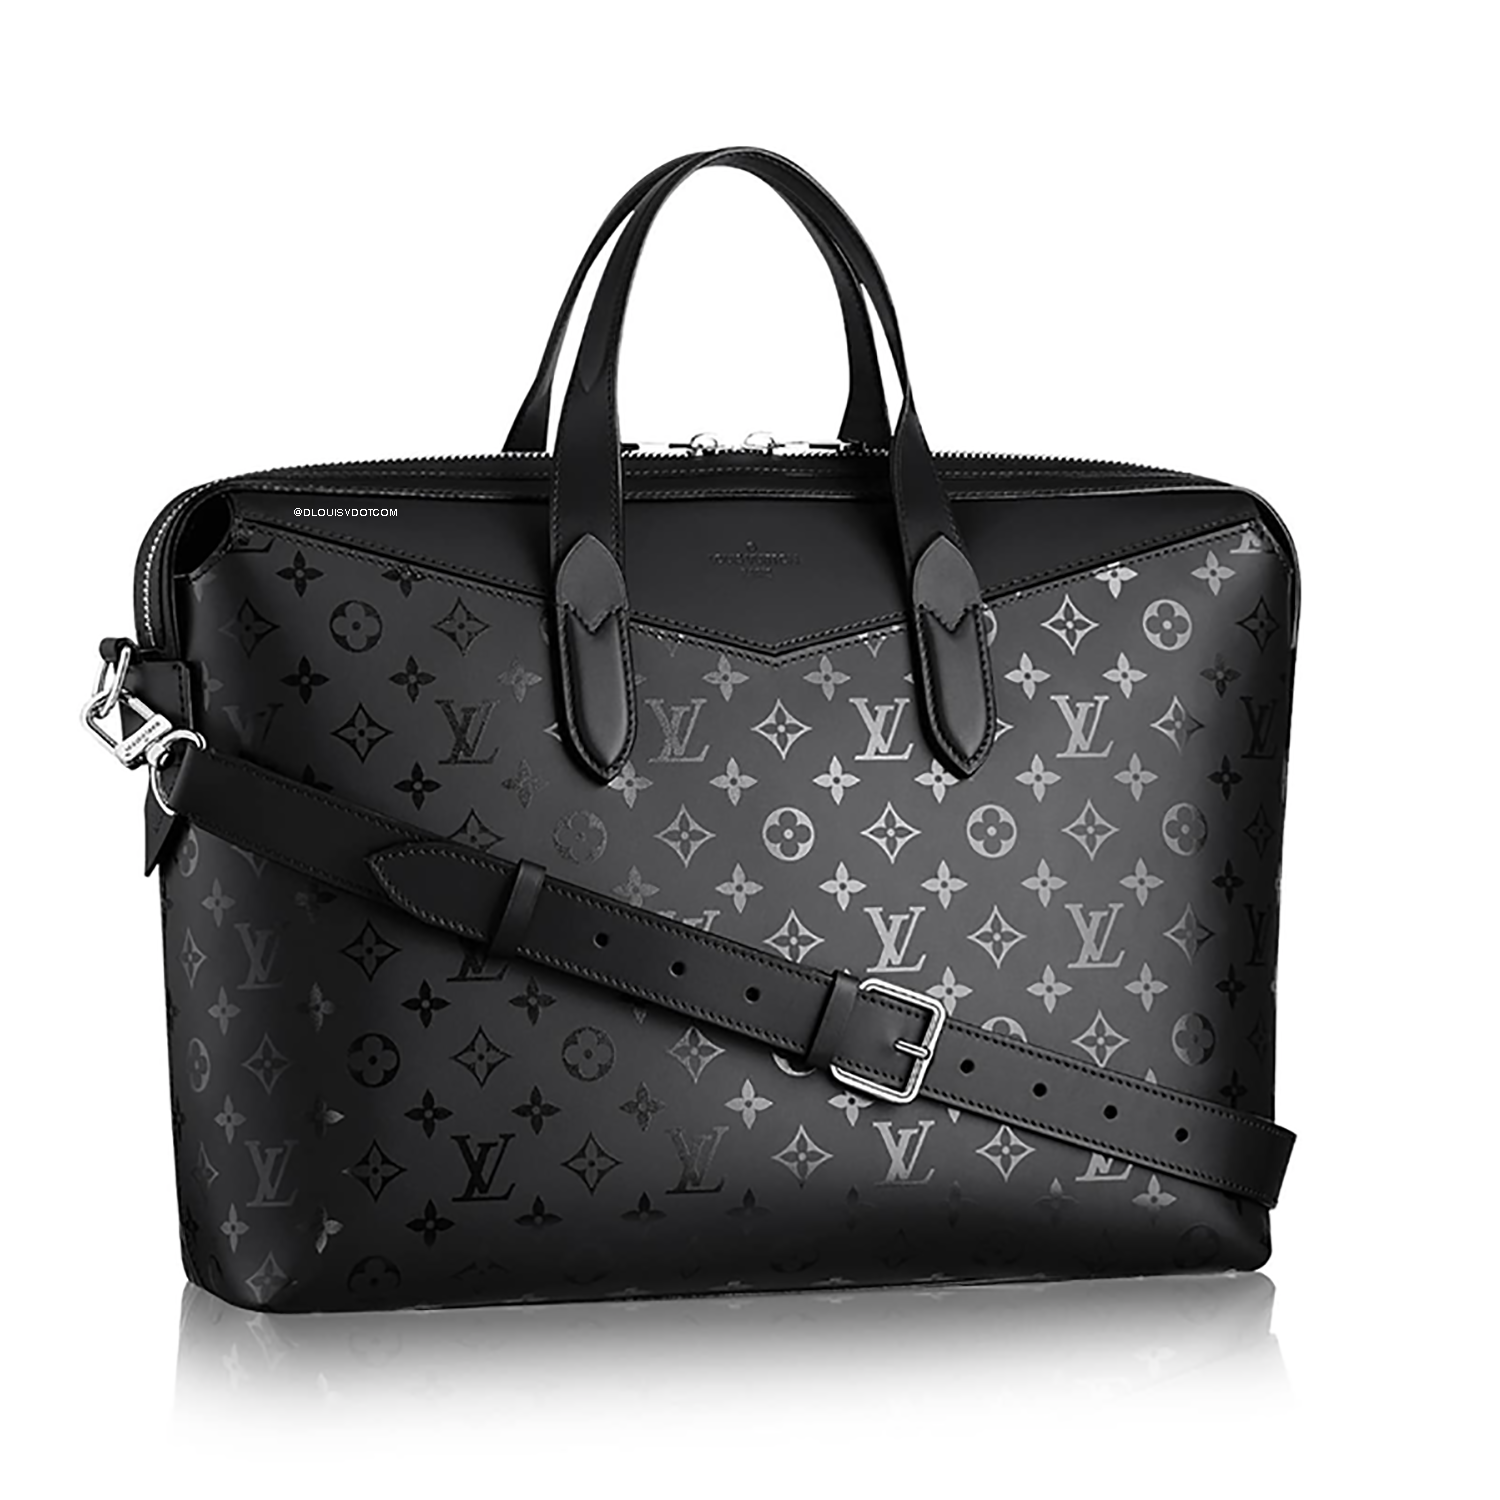 BRIEFCASE EXPLORER - €2700 $M40529MONOGRAM ILLUSION